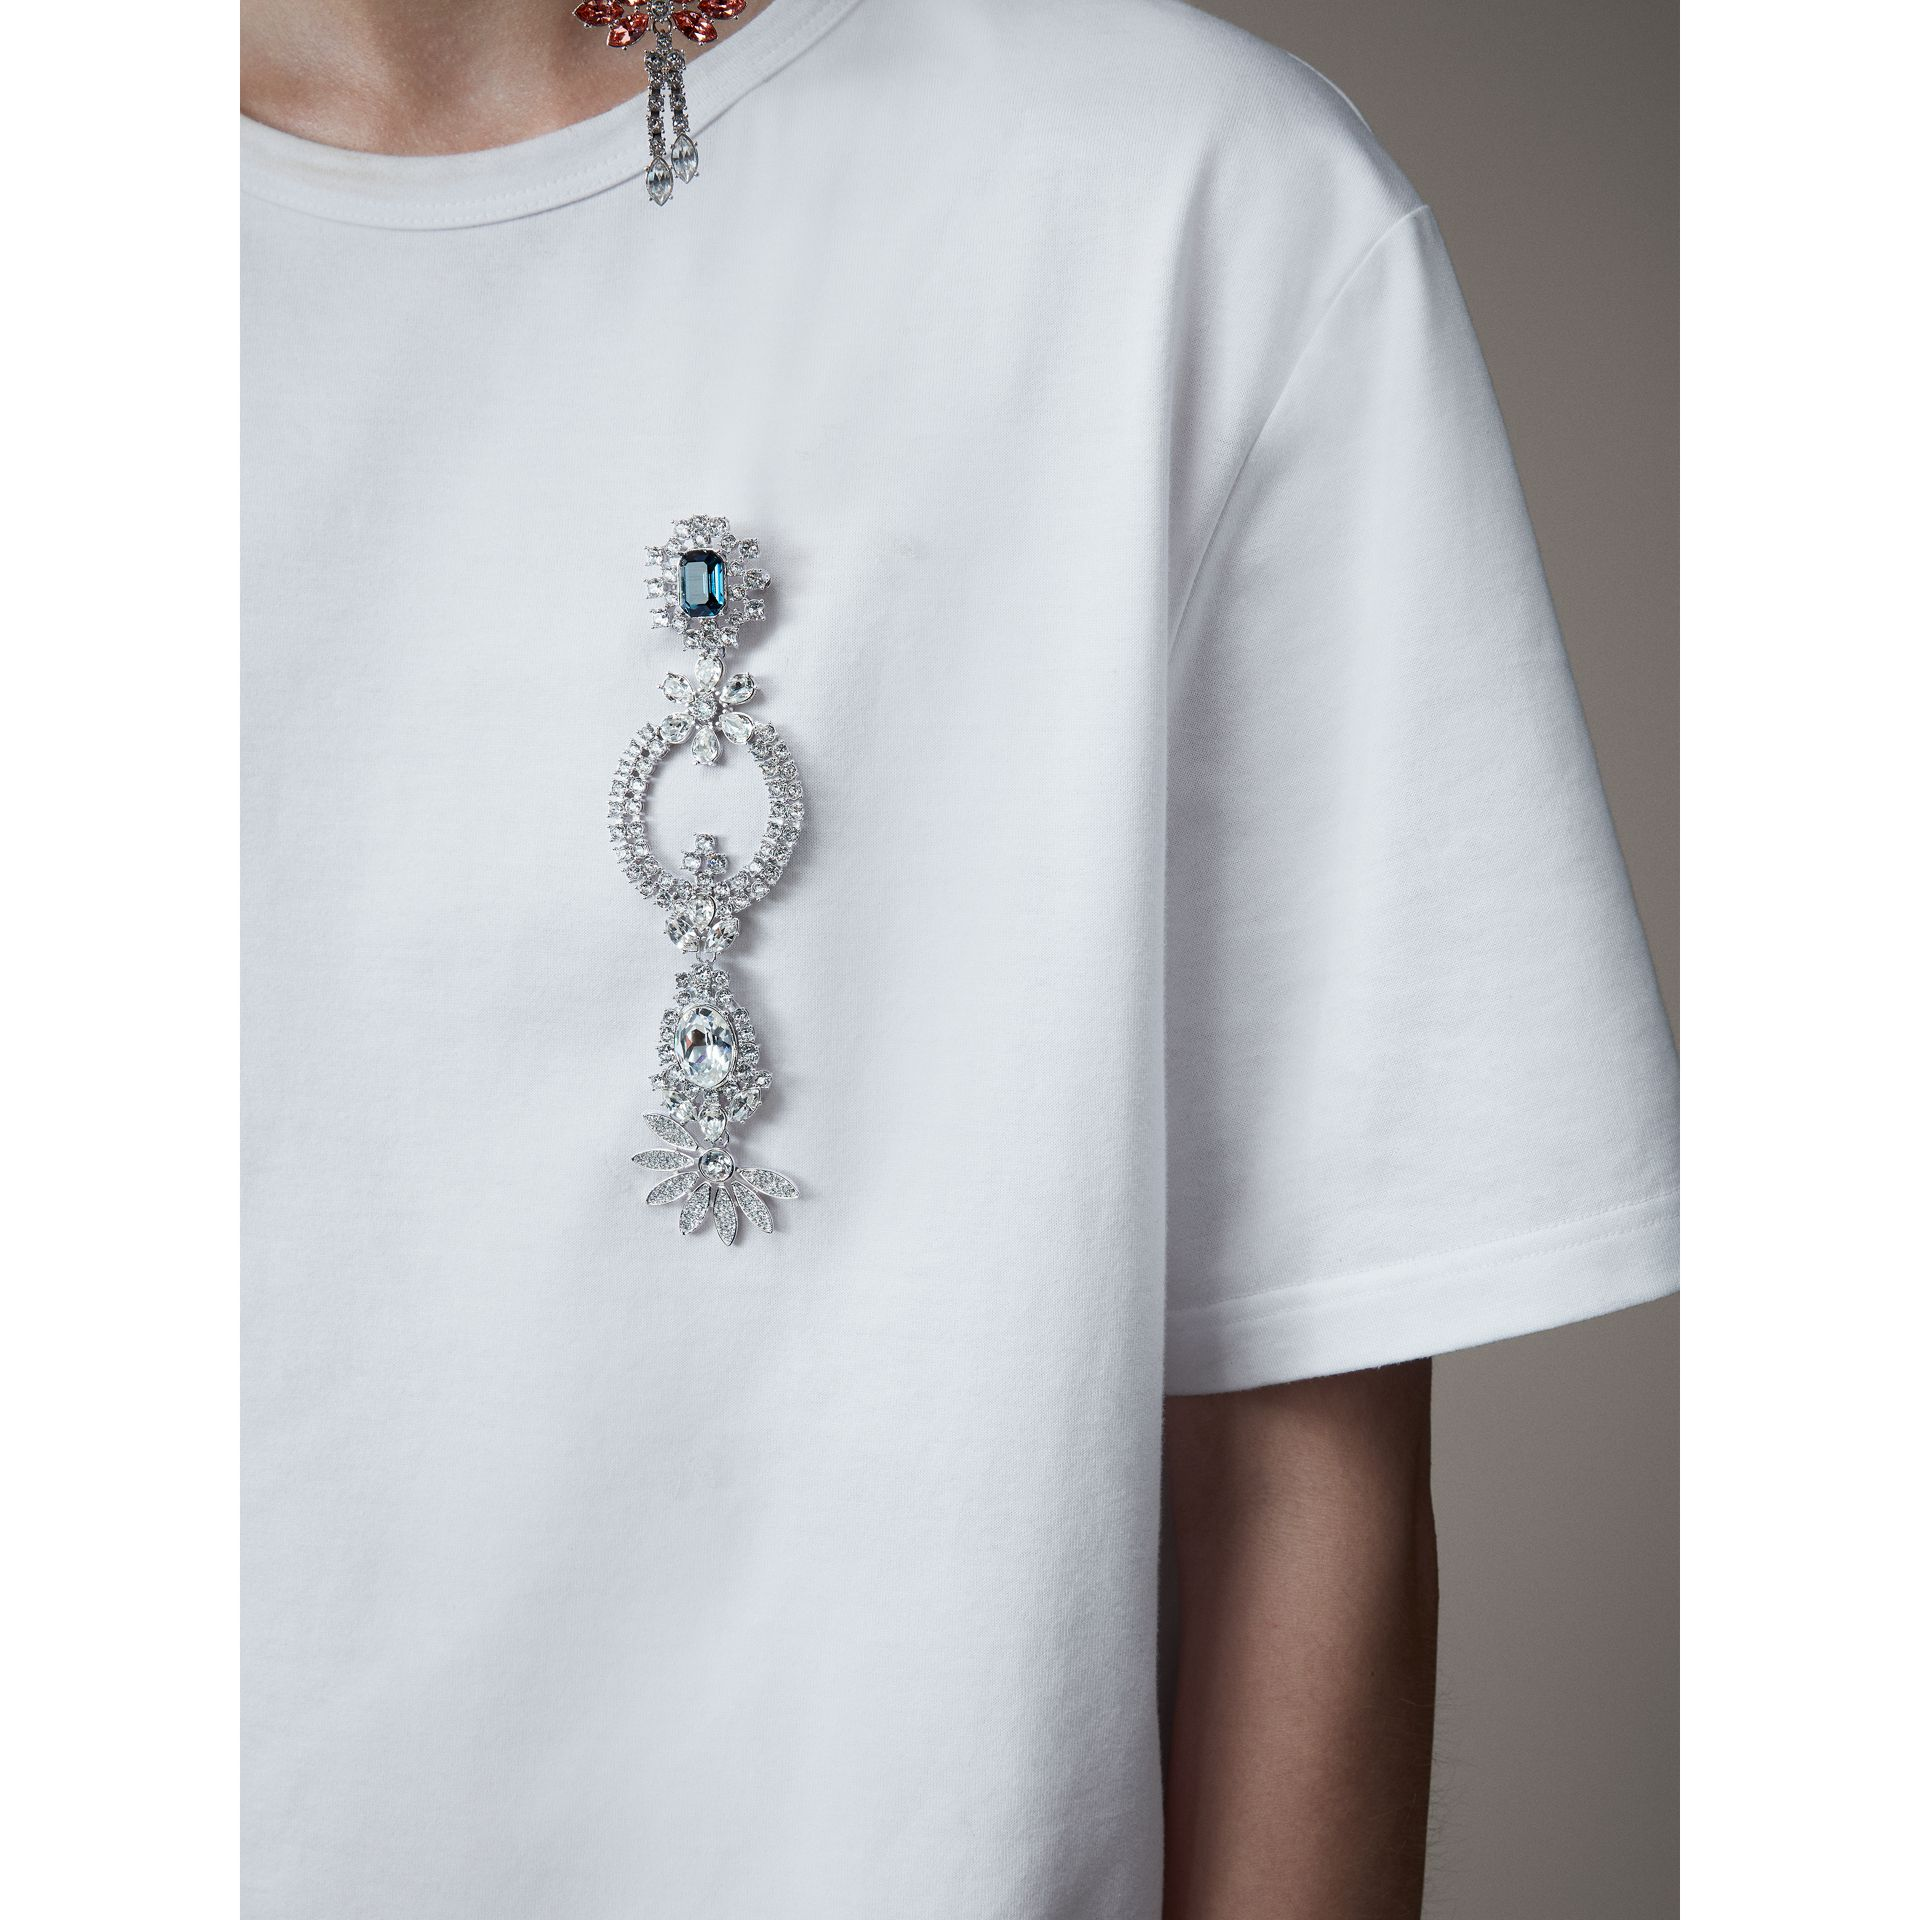 Boyfriend Fit T-shirt with Crystal Brooch in Optic White - Women | Burberry - gallery image 2